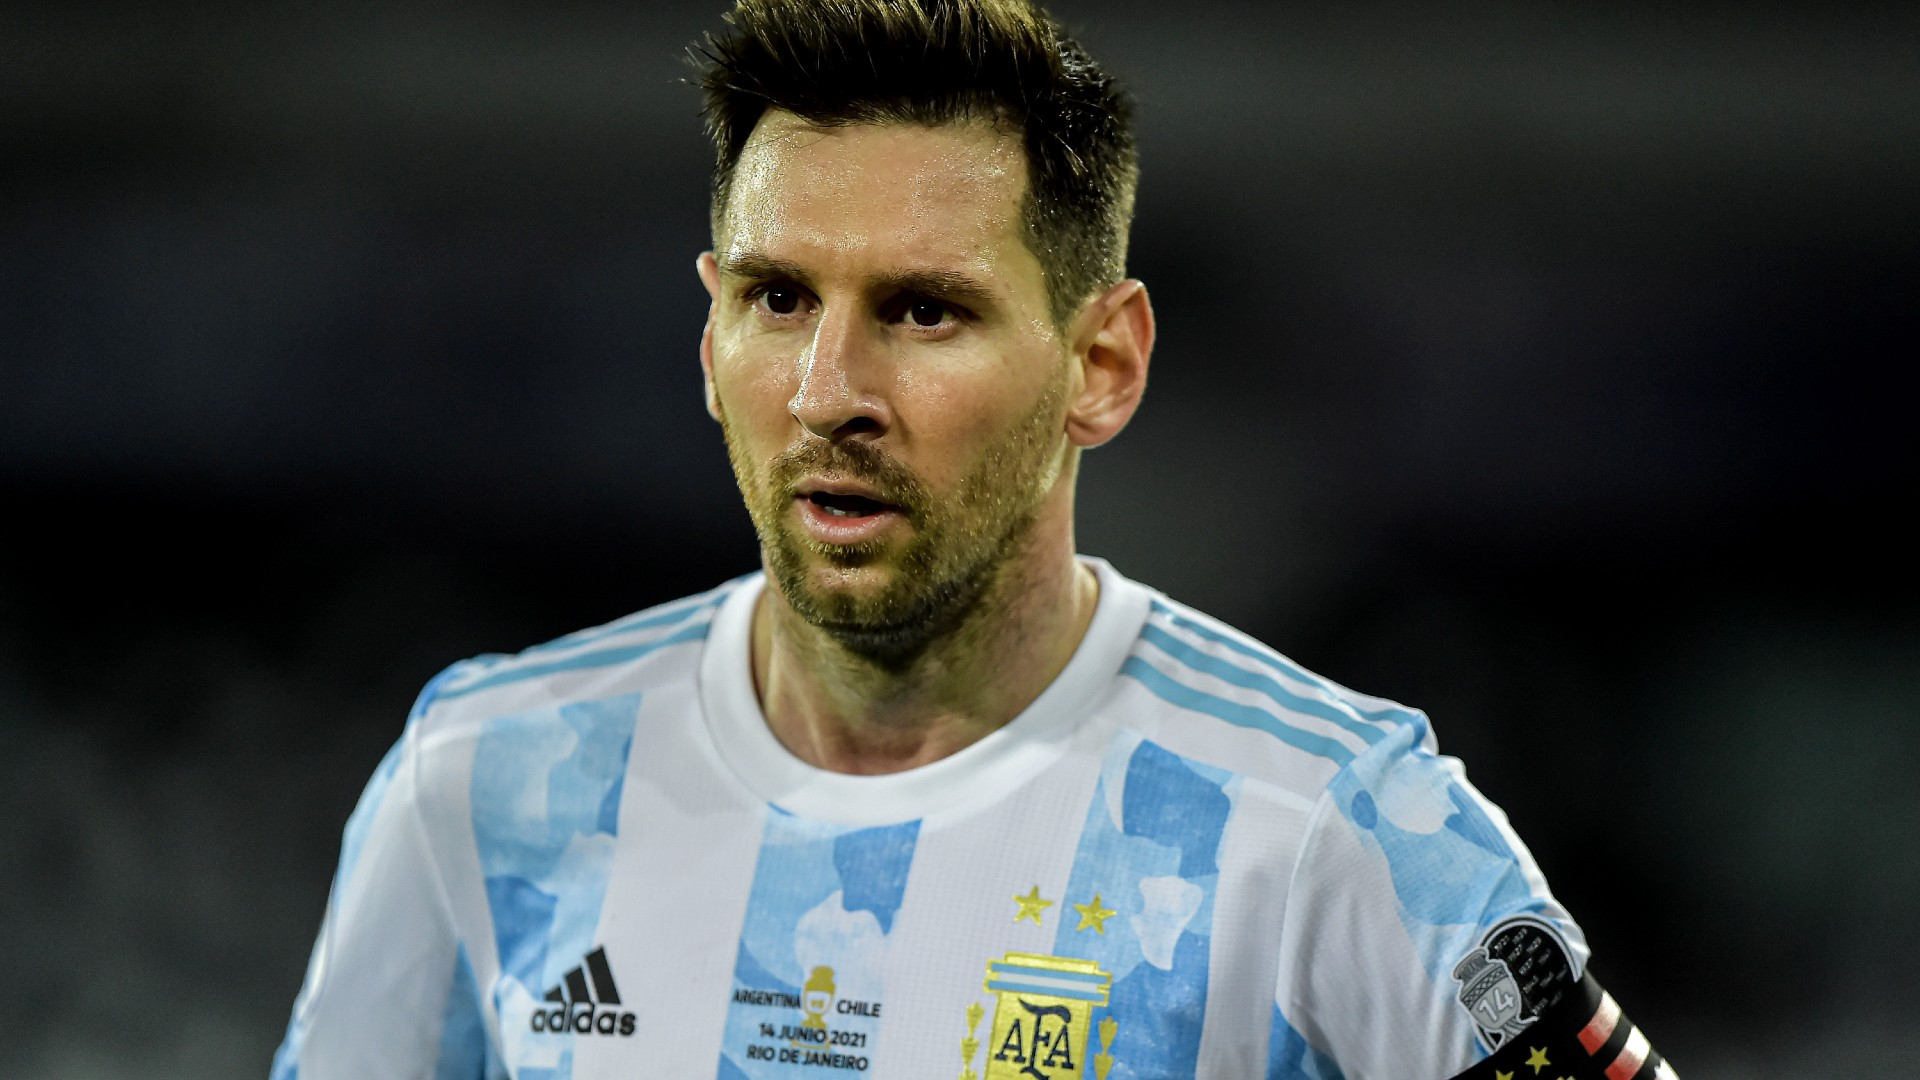 Will Lionel Messi finally win a Copa America? Alexi Lalas says it would be  a surprise if Messi, Argentina beat Brazil   Sporting News